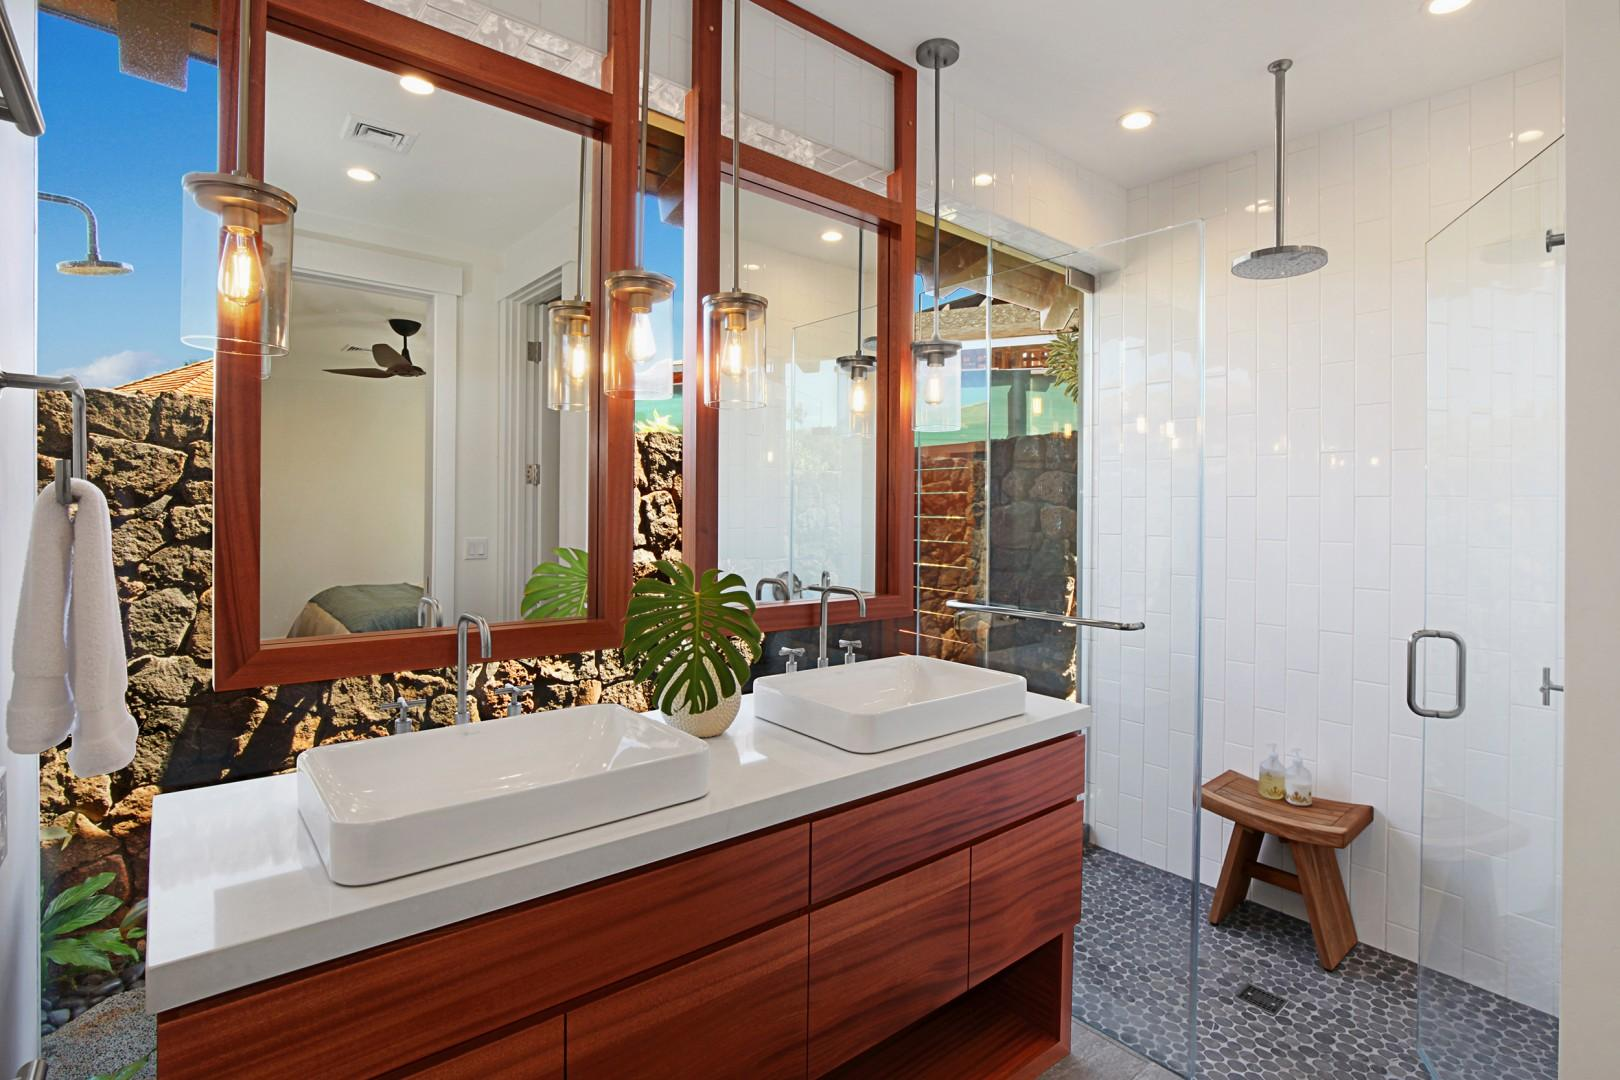 Guest bathroom 3 with outdoor lava rock shower